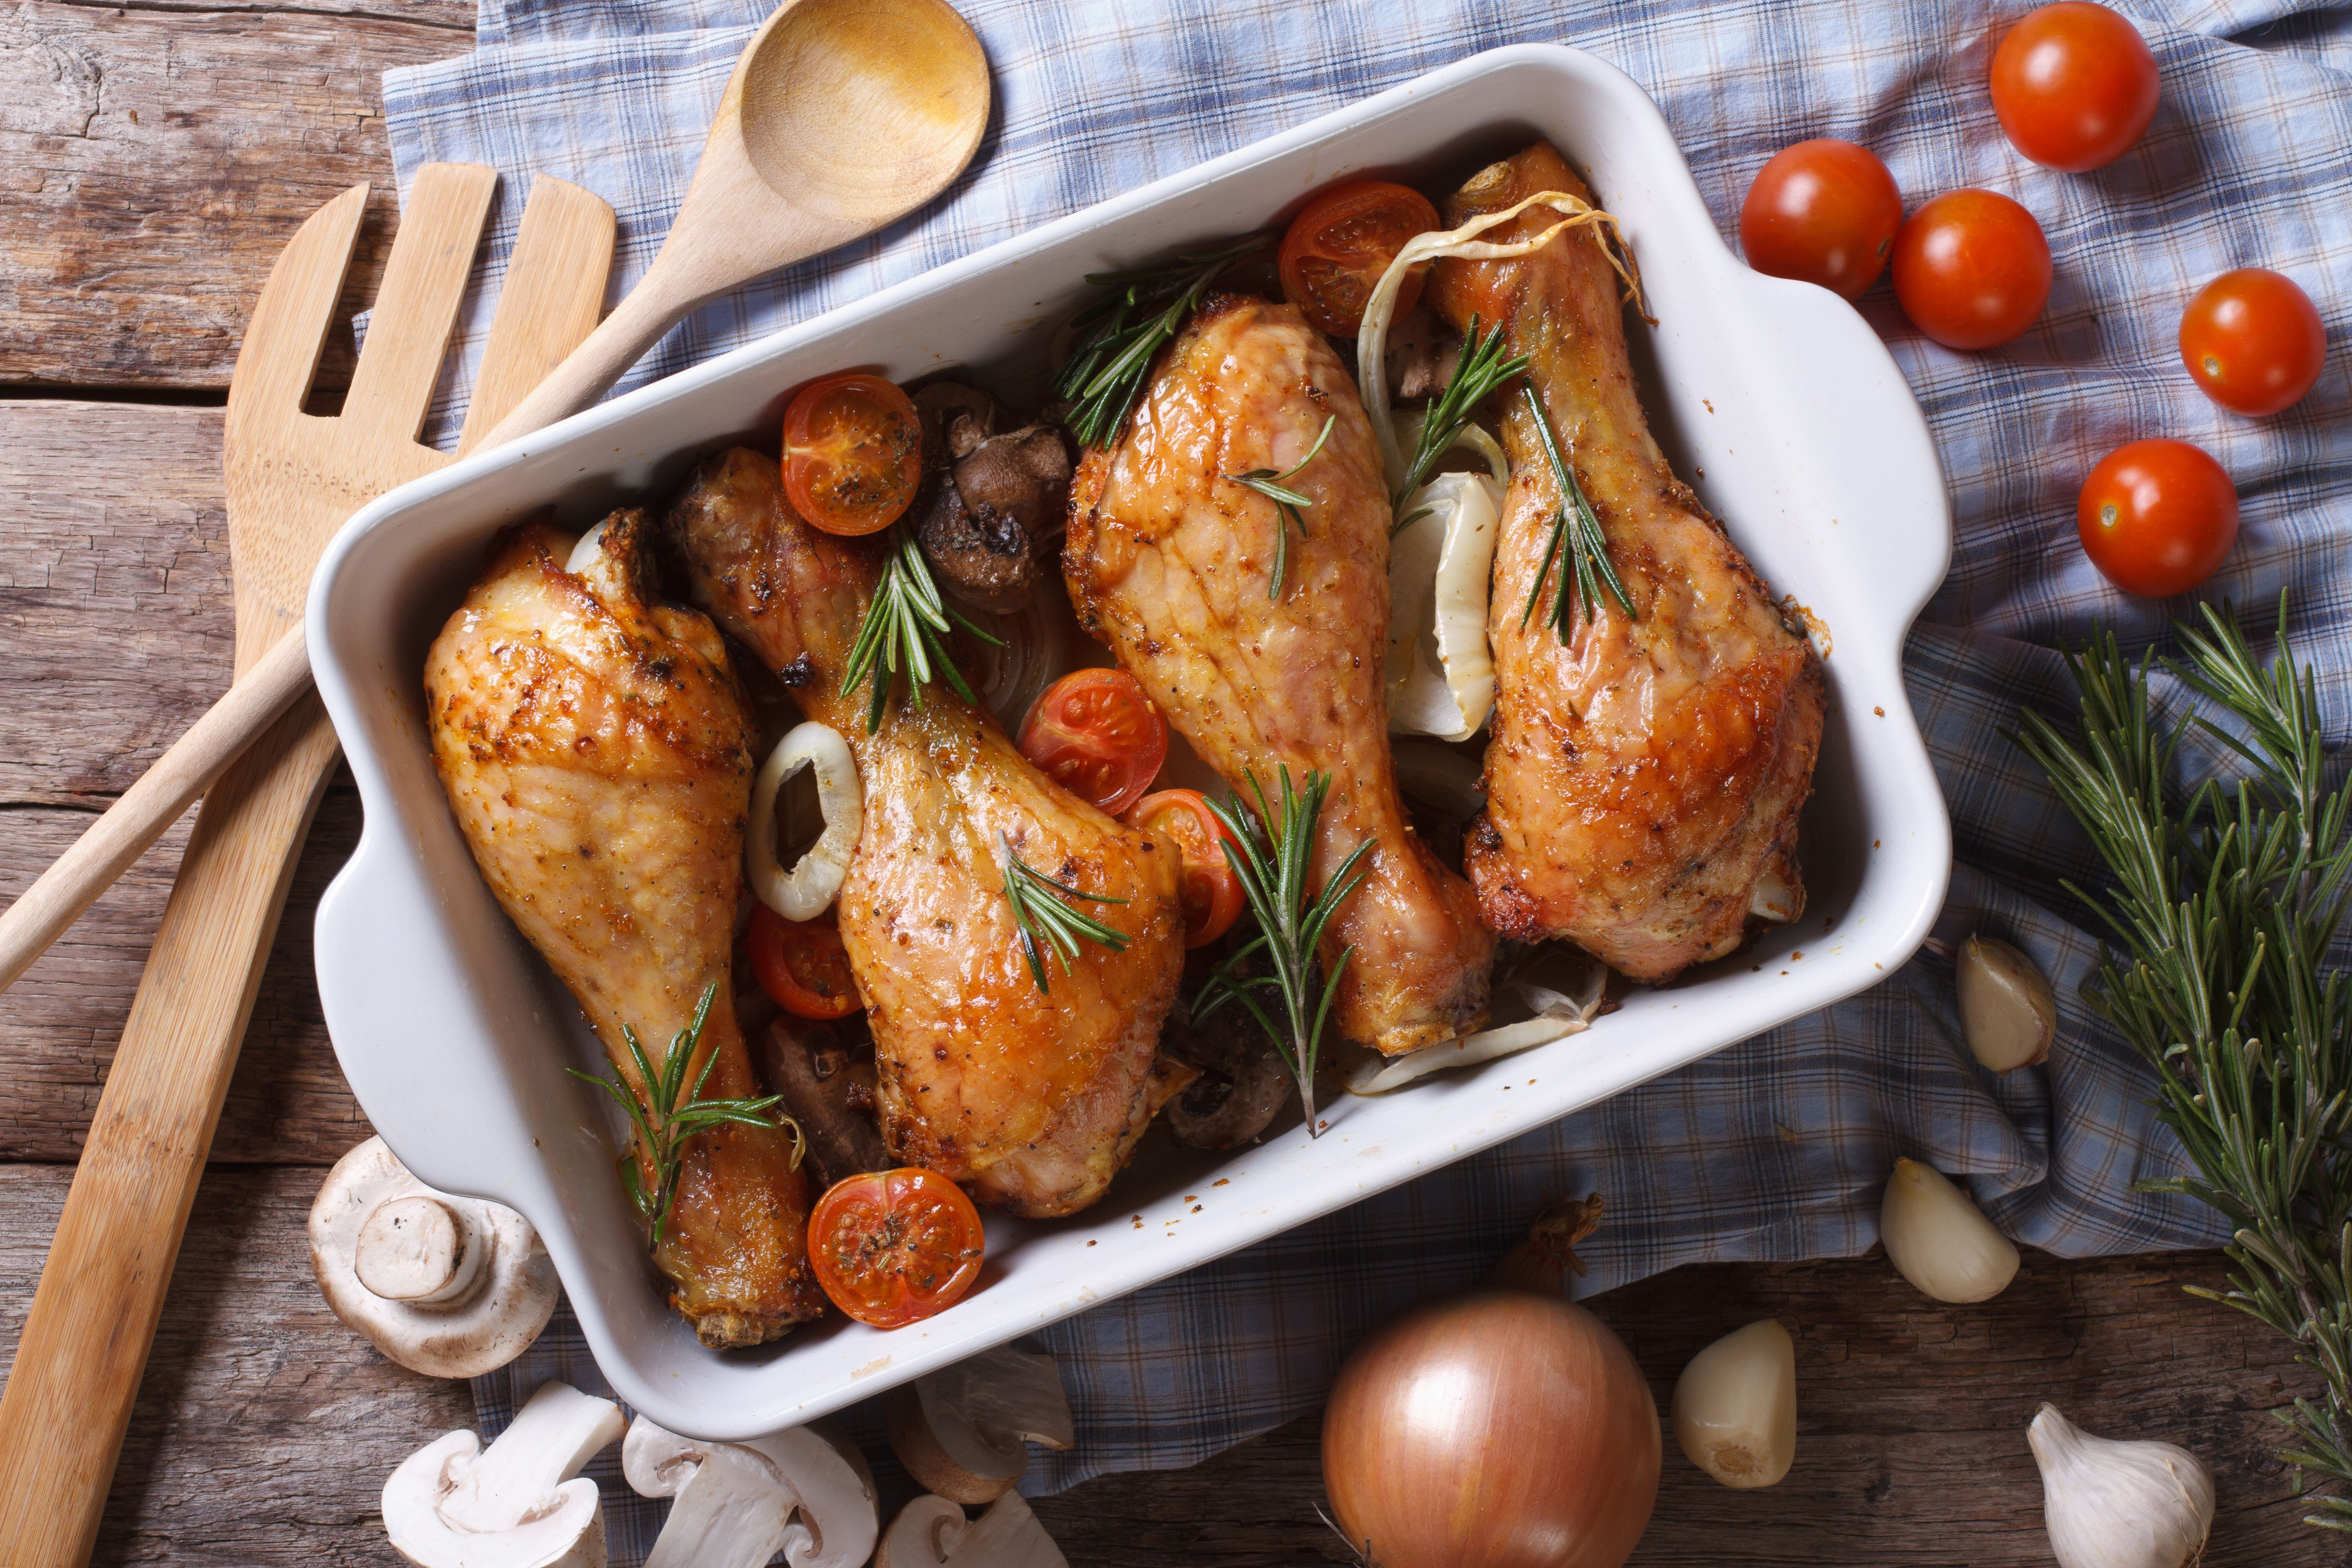 How To Bake Boiled Chicken Legs In The Oven Livestrong Com Baked Chicken Legs Baked Chicken Chicken Leg Recipes